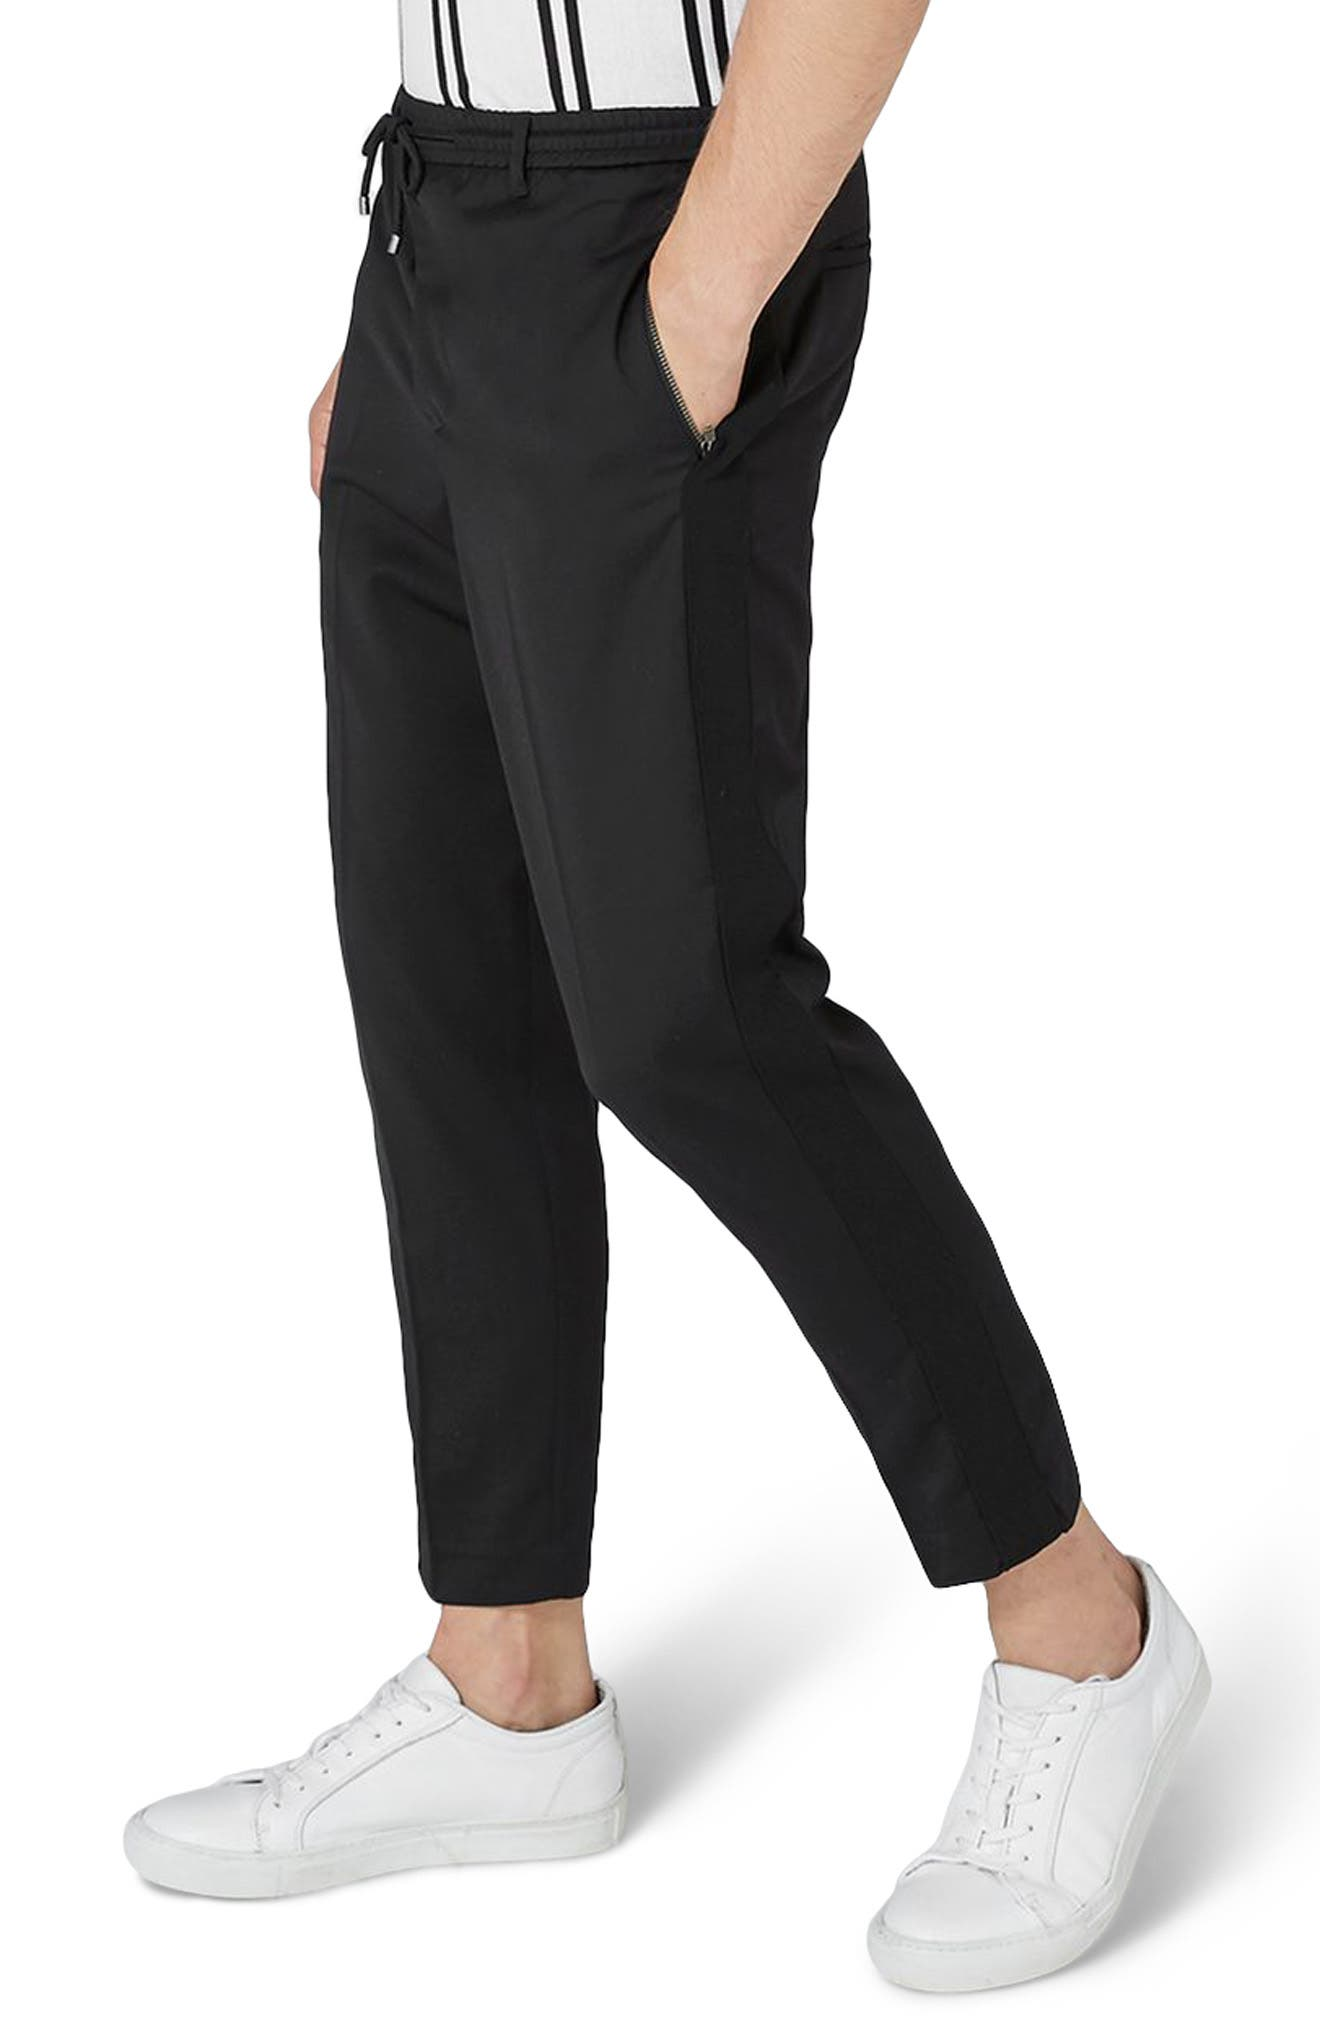 Side Zip Dress Pants,                         Main,                         color, Black